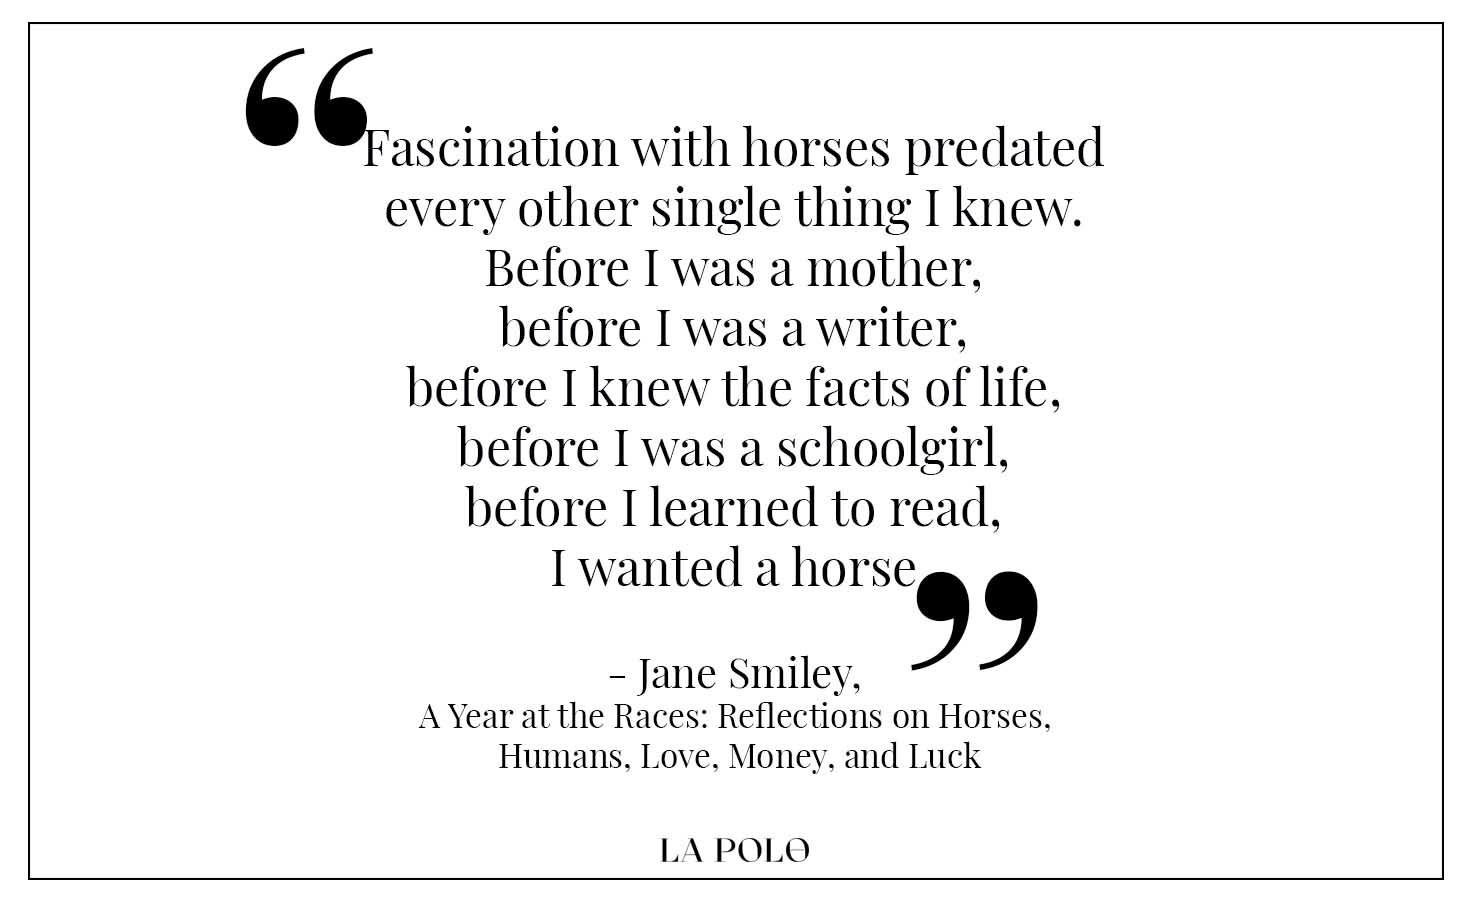 Jane Smiley quotes